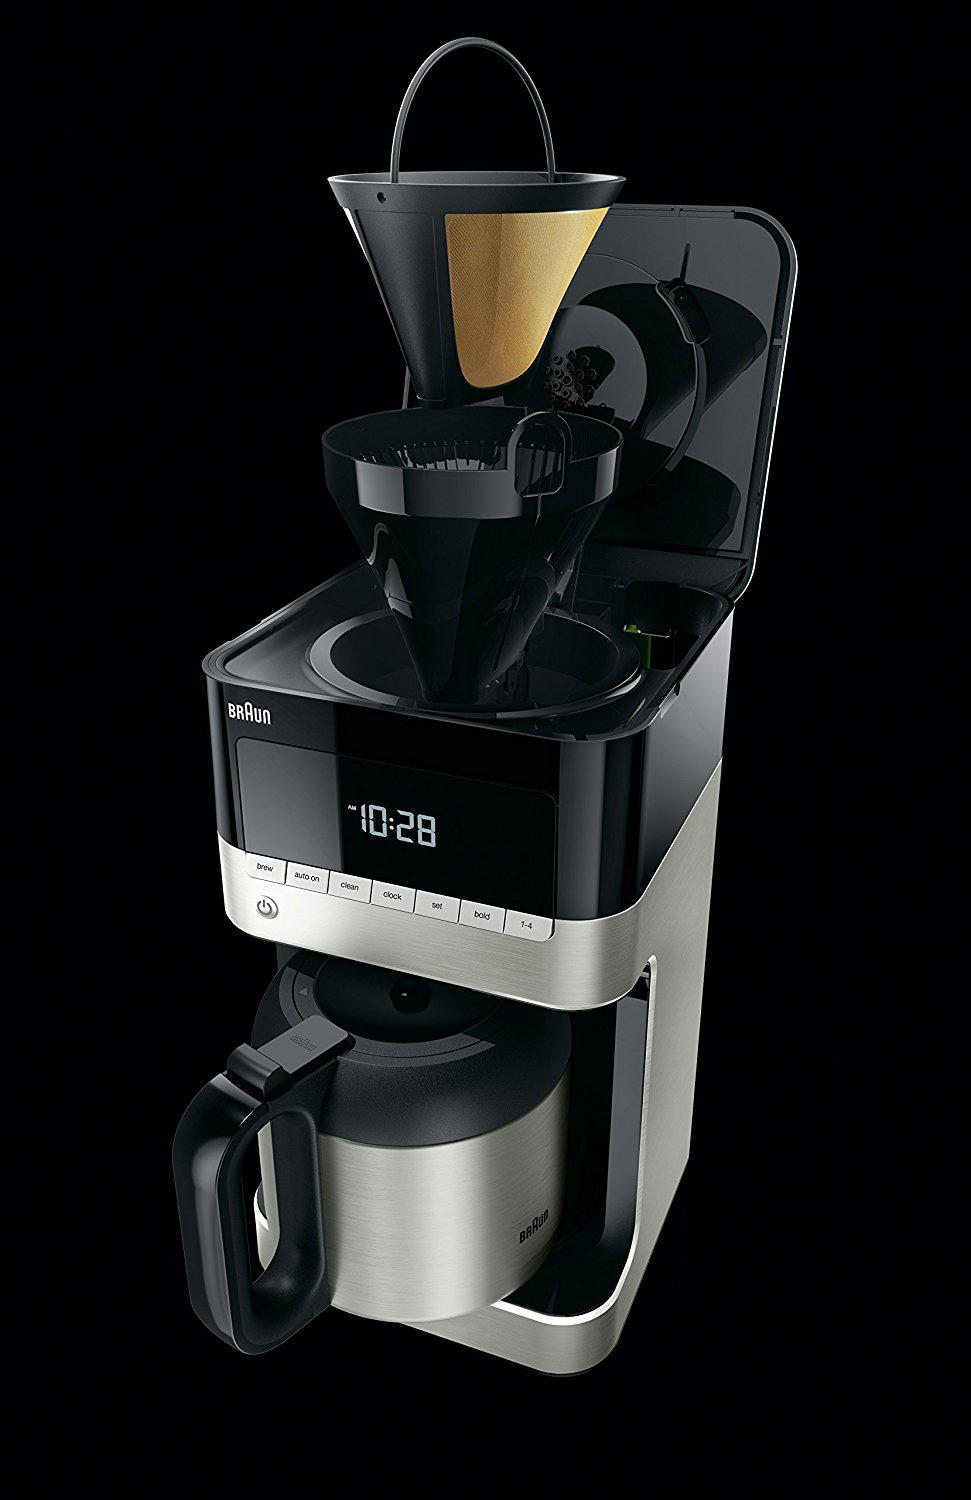 Braun Drip Coffee Maker : Braun KF7155BK BrewSense Thermal Drip Coffee Maker Best Price - Braun KF7155BK BrewSense Thermal ...